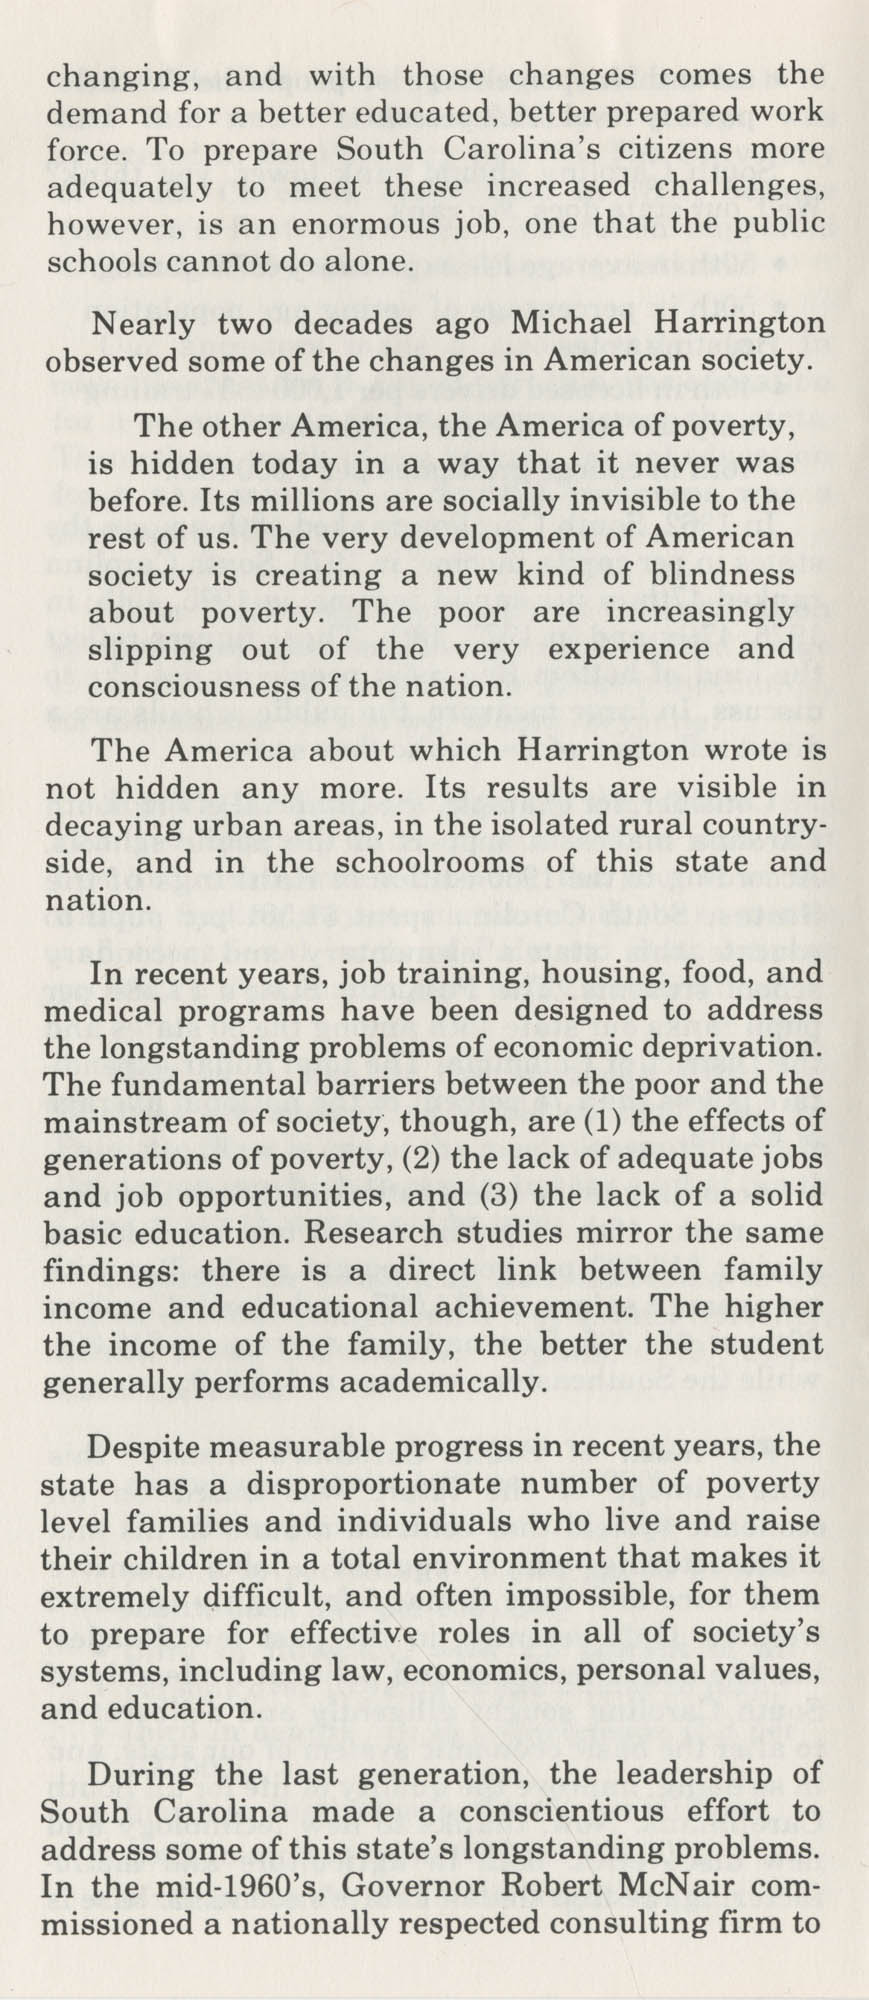 Education-Economy, Inseparable Forces in South Carolina's Past and Future, Page 5